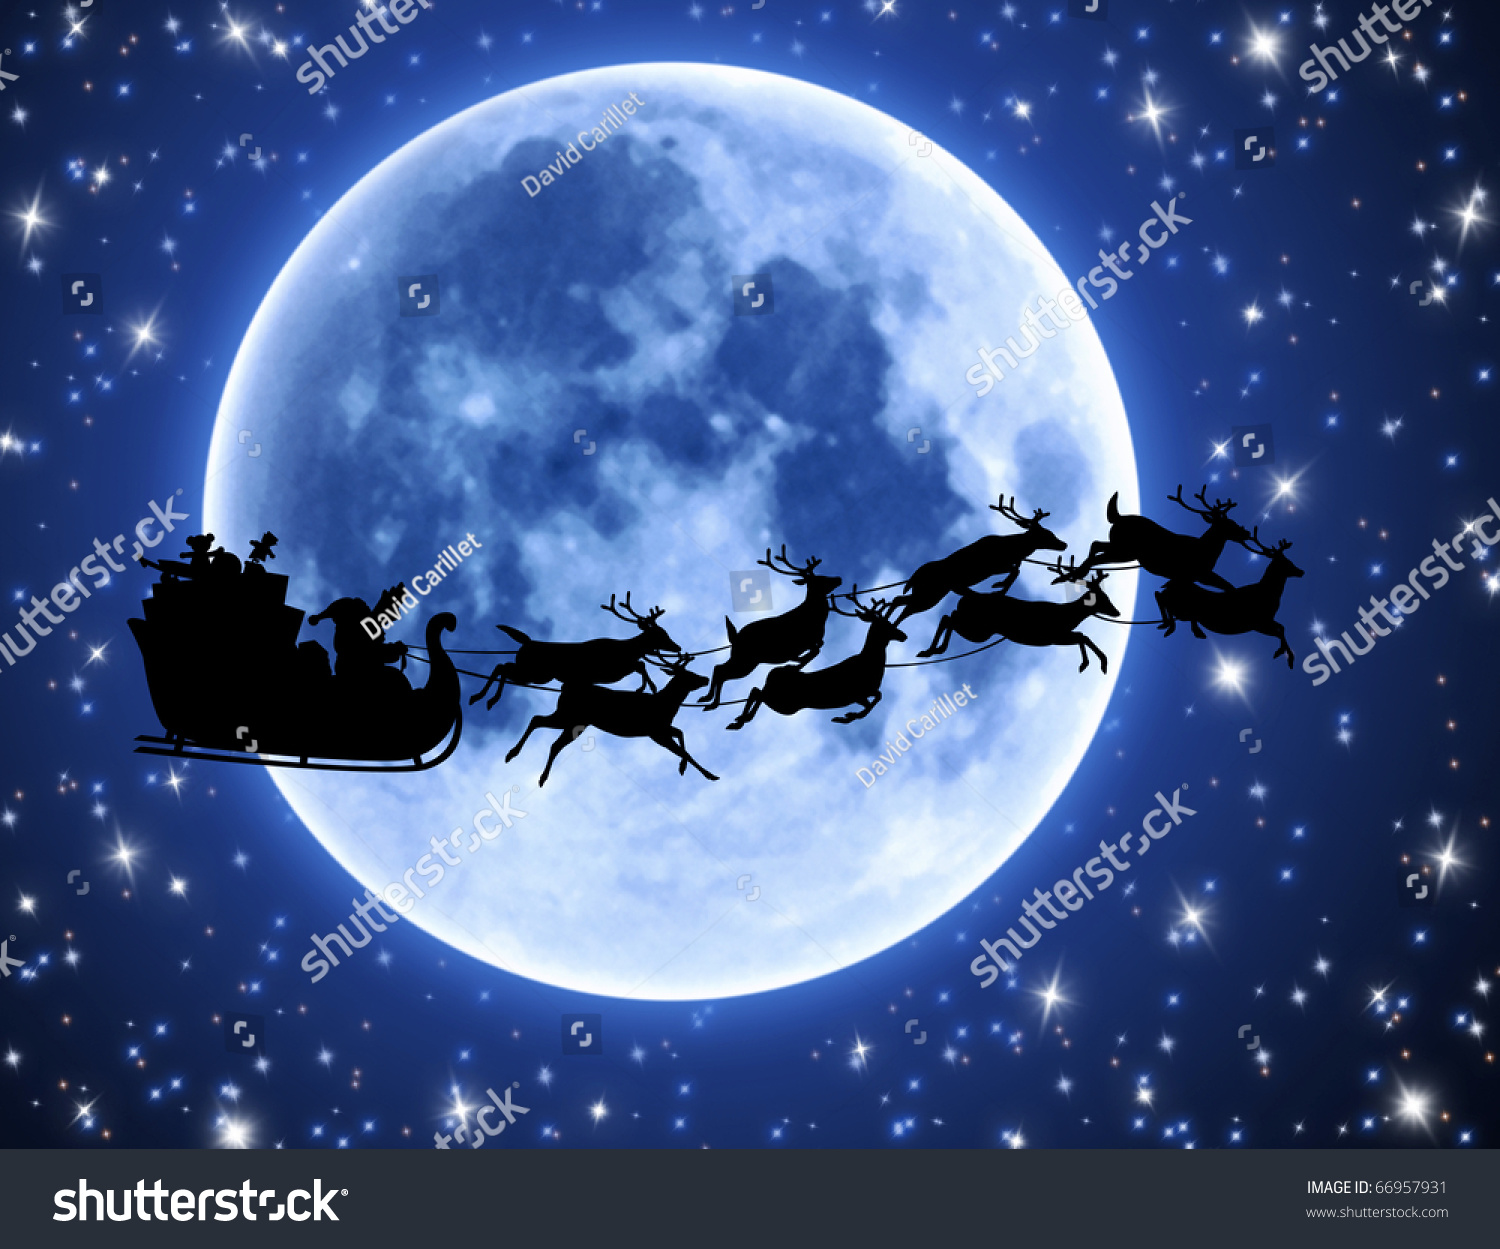 Santa'S Sleigh And Reindeer Silhouette With Full Moon And Stars Stock ...